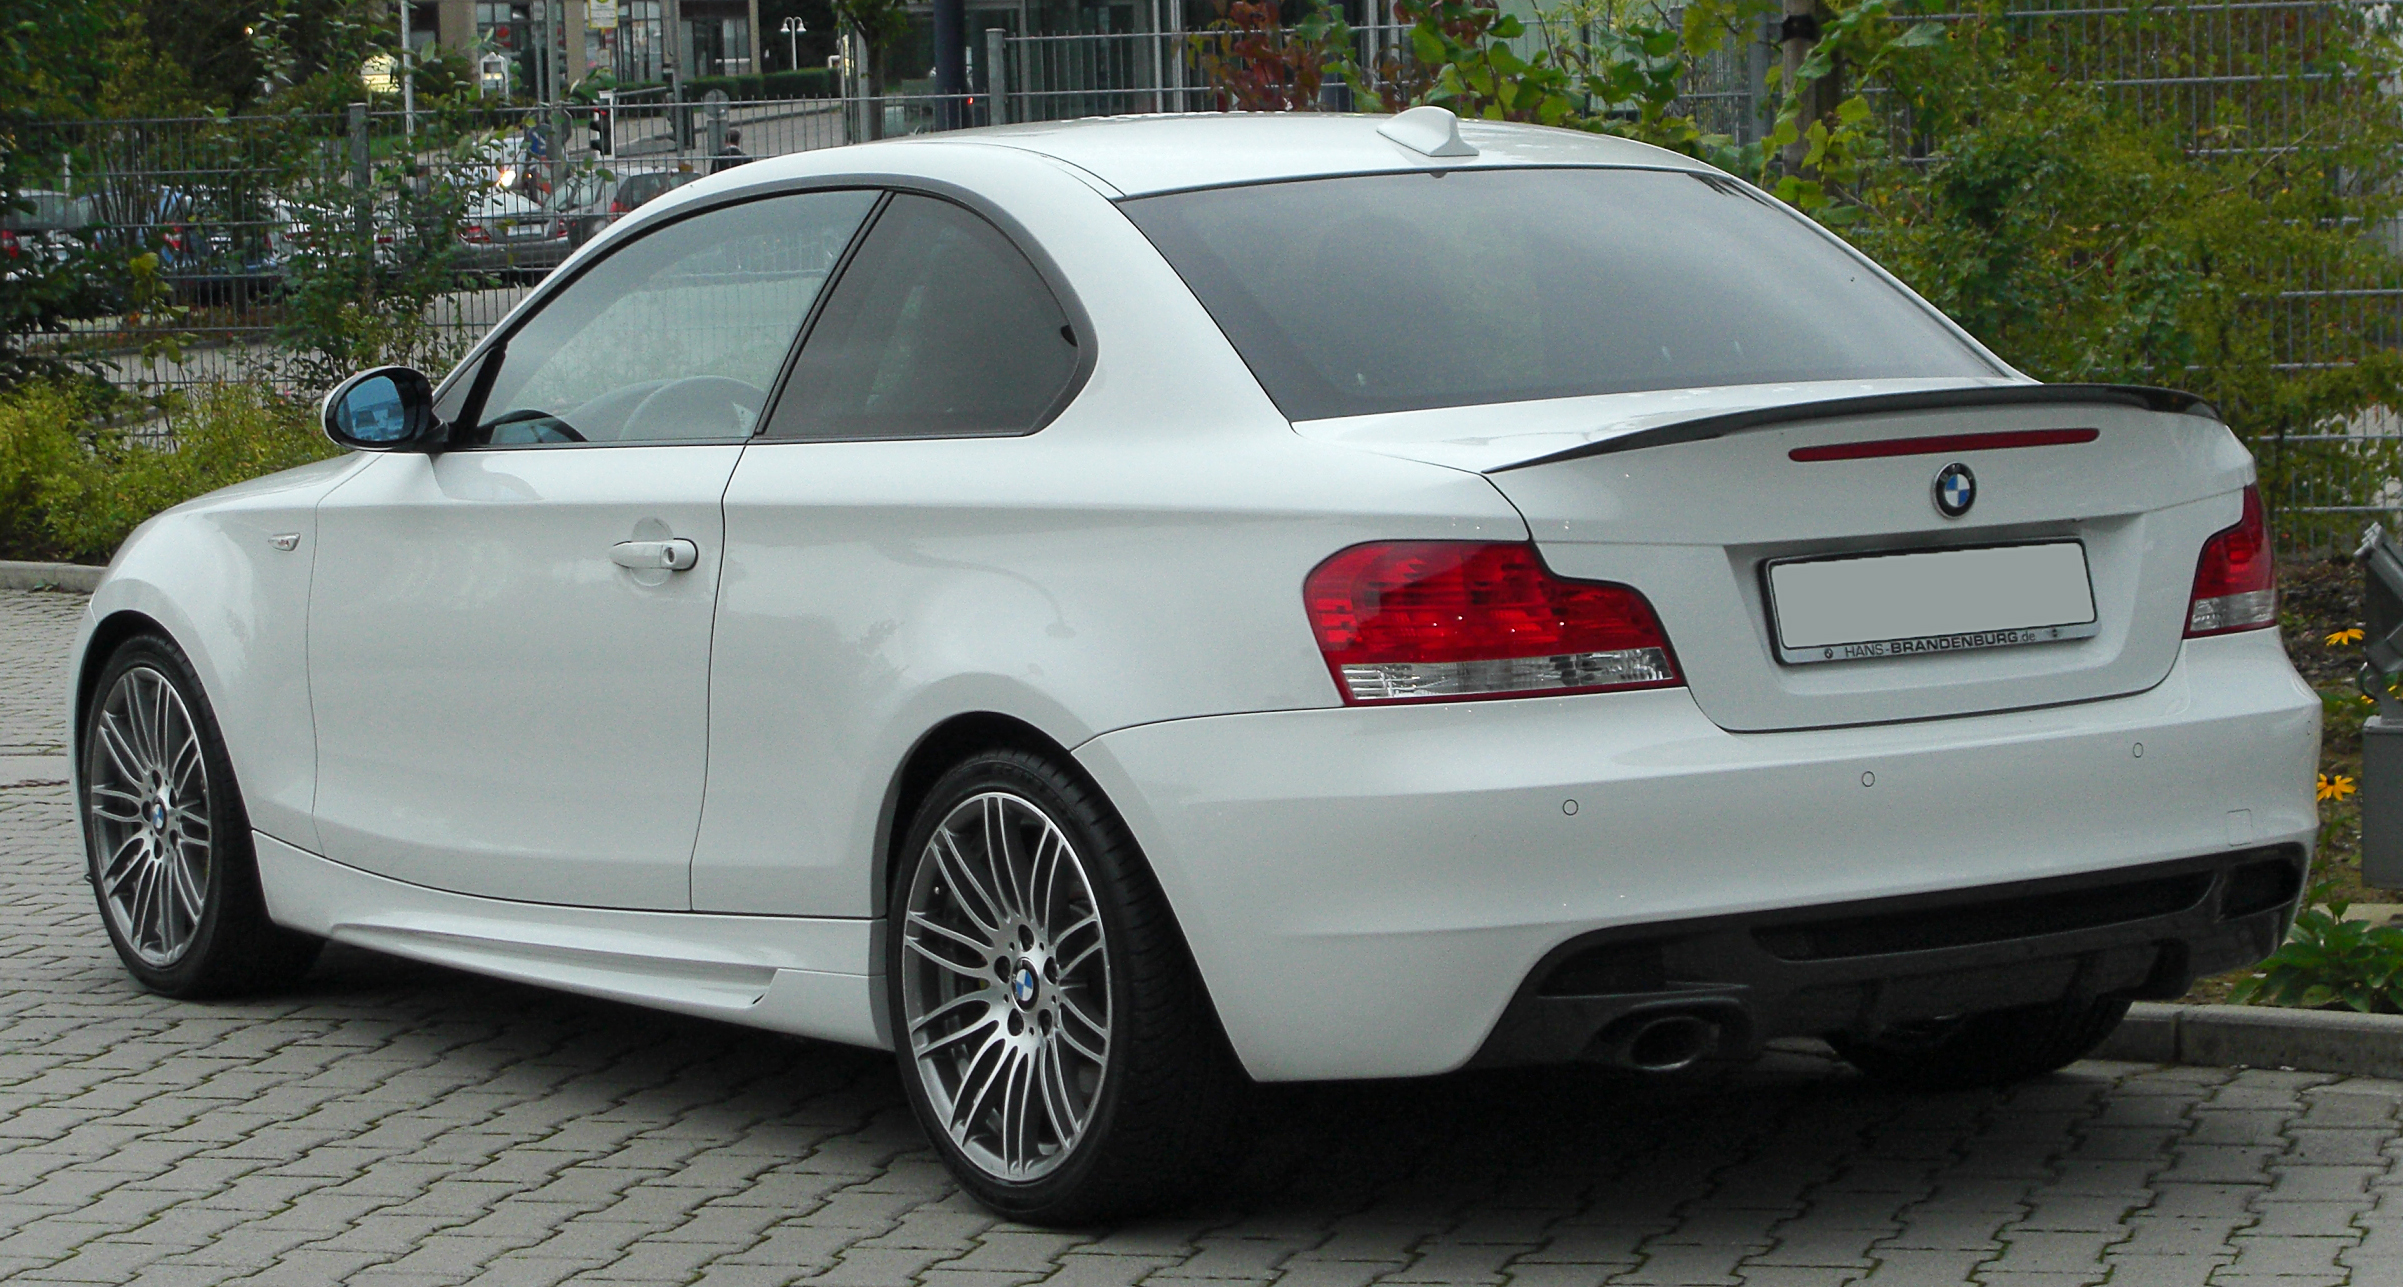 file bmw 123d coup sportpaket bmw performance e82 rear 2 wikimedia commons. Black Bedroom Furniture Sets. Home Design Ideas